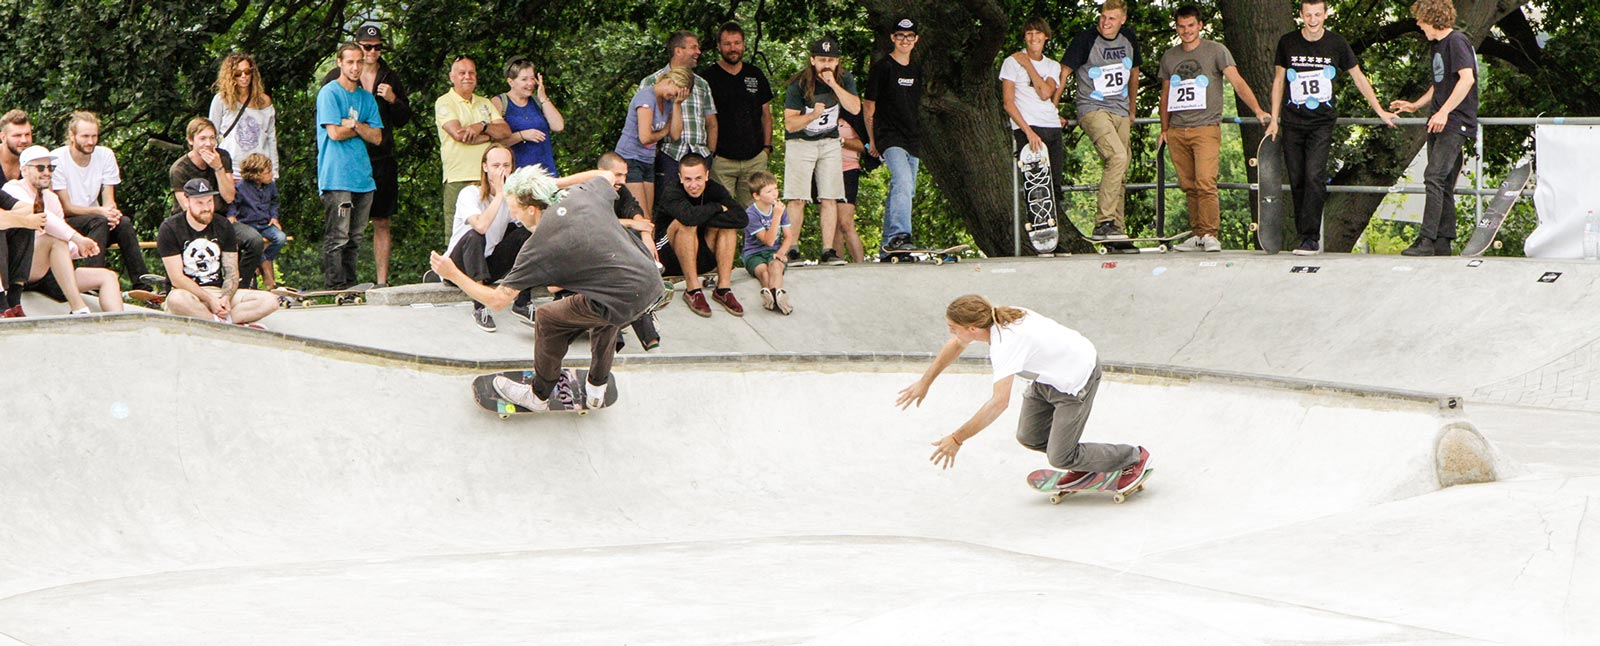 slider_start_ruegen_skateboarden_23